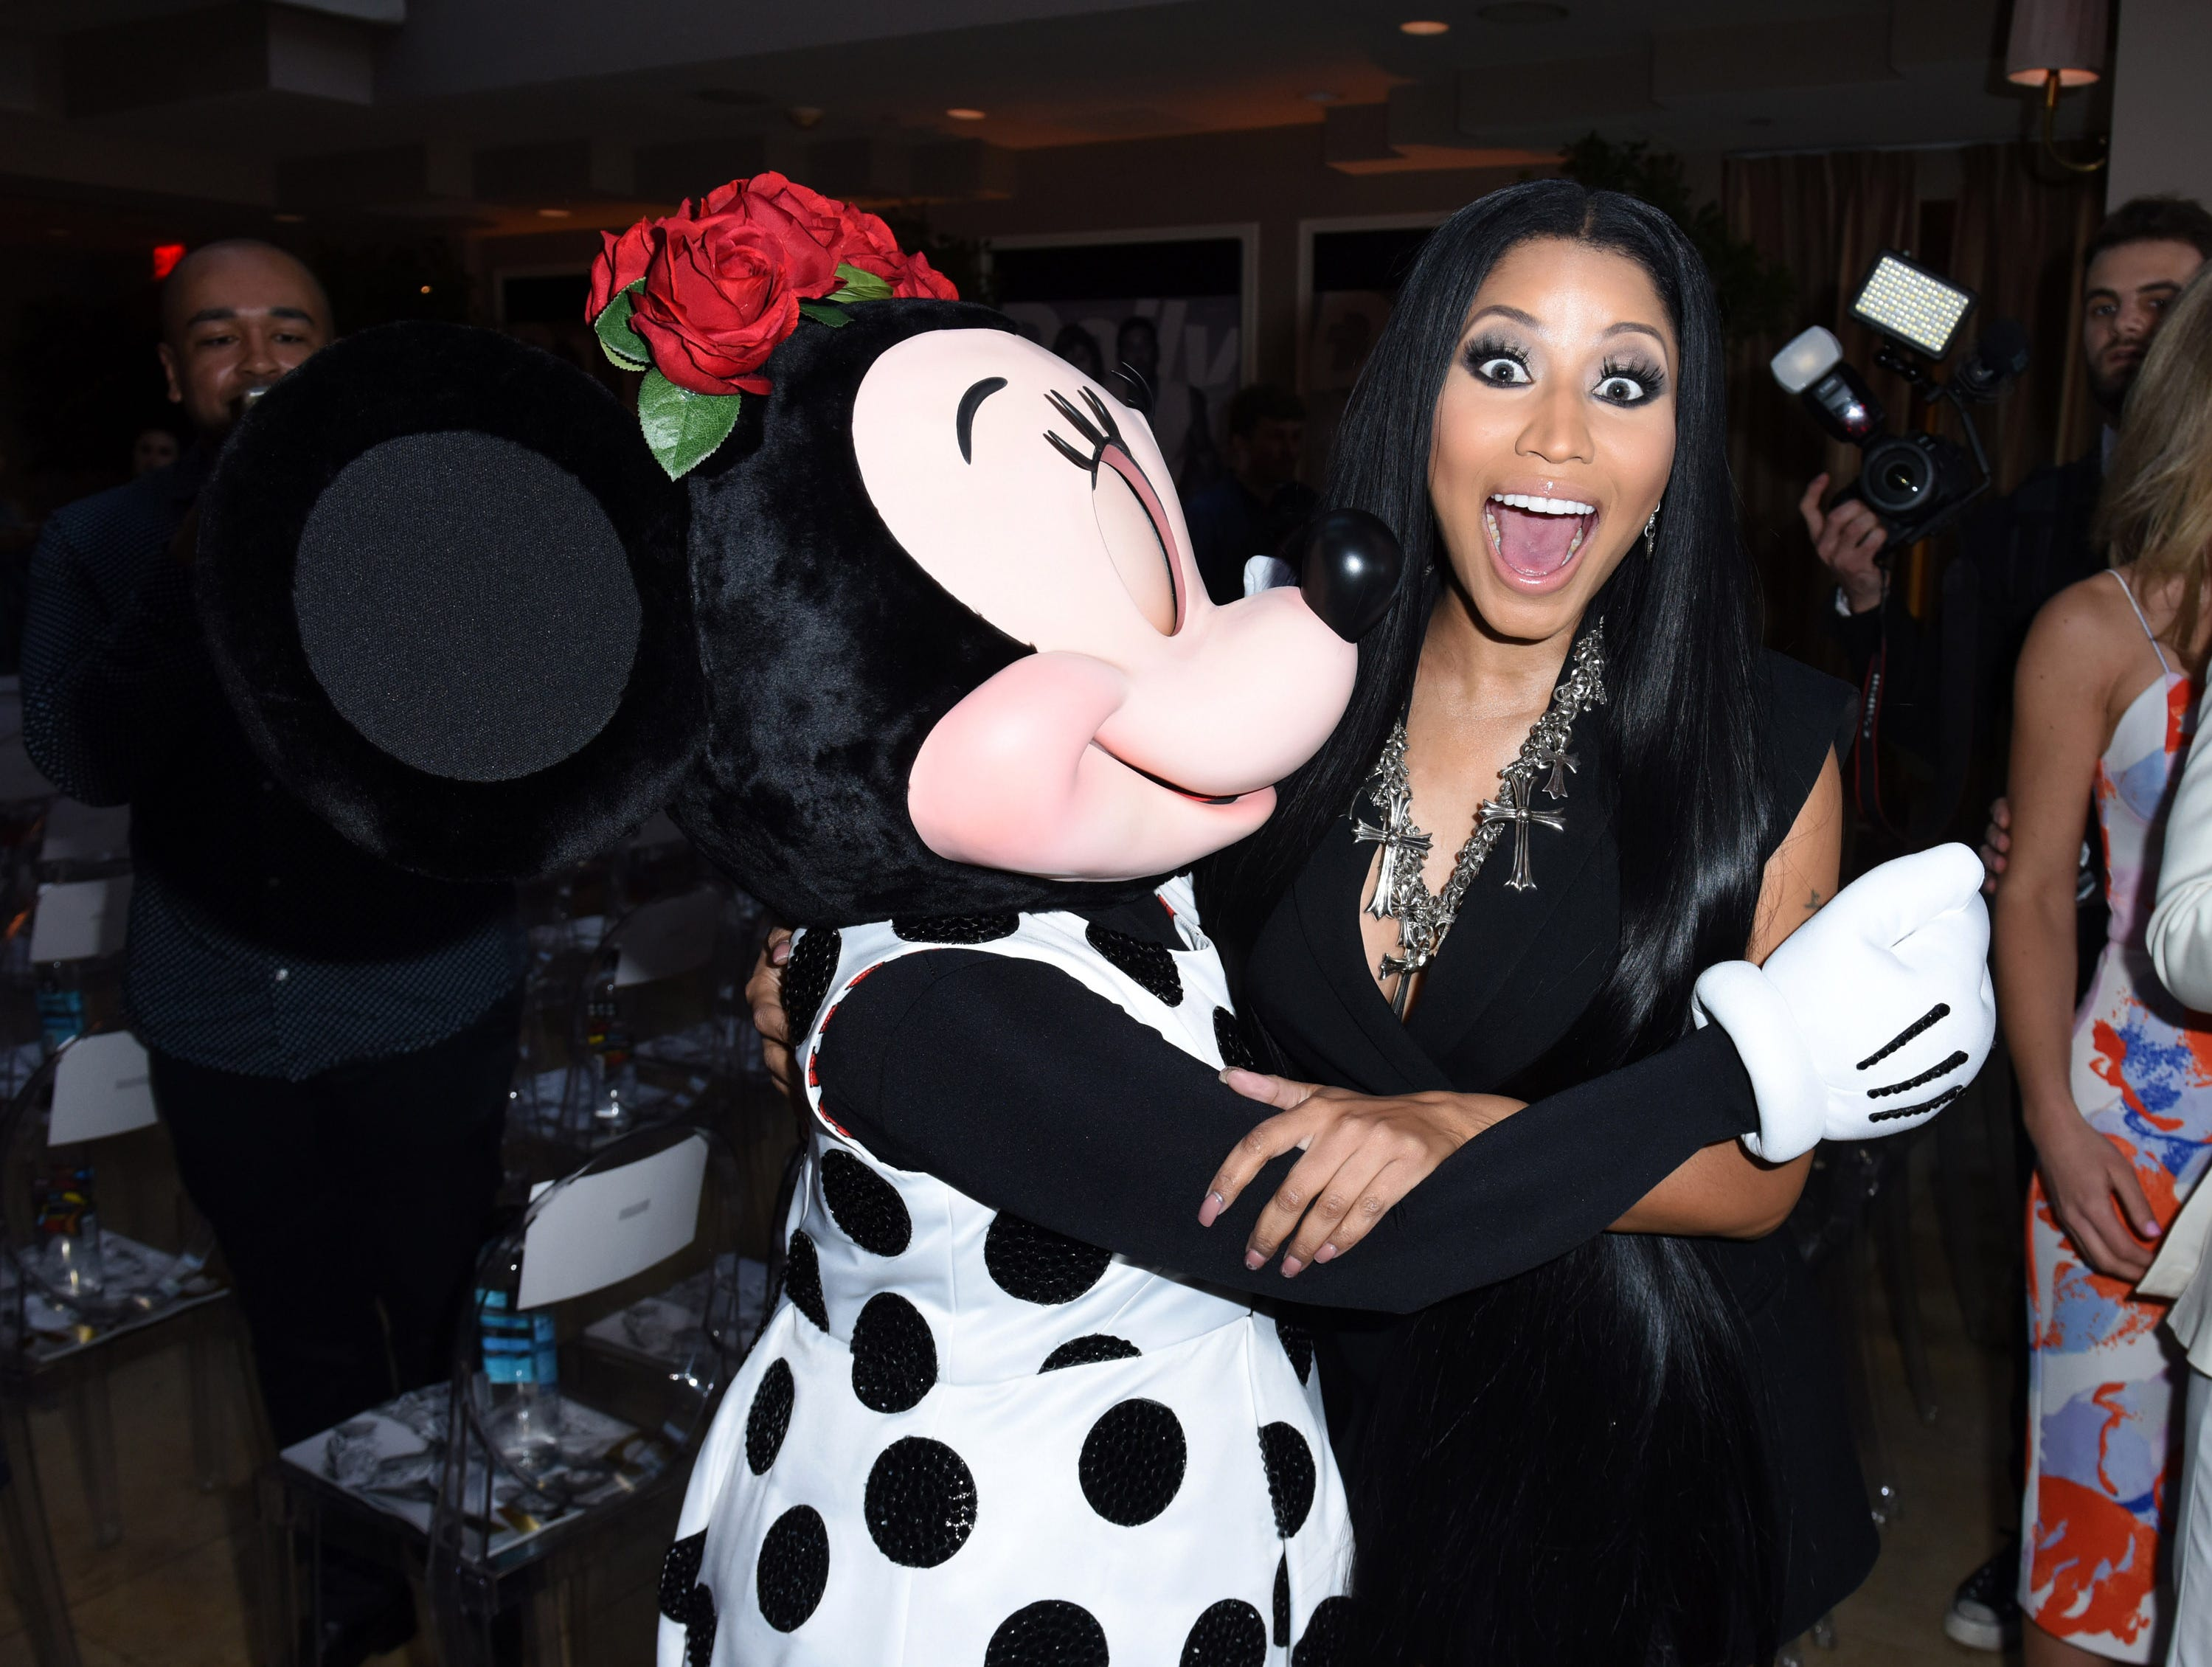 WEST HOLLYWOOD, CA - APRIL 02:  Minnie Mouse and Nicki Minaj attend Fashion LA Awards.  Minnie wears custom alice + olivia by Stacey Bendet dress at the Sunset Tower Hotel on April 2, 2017 in West Hollywood, California.  (Photo by Vivien Killilea/Getty Images for Disney Consumer Products and Interactive Media) ORG XMIT: 700025142 ORIG FILE ID: 663907804